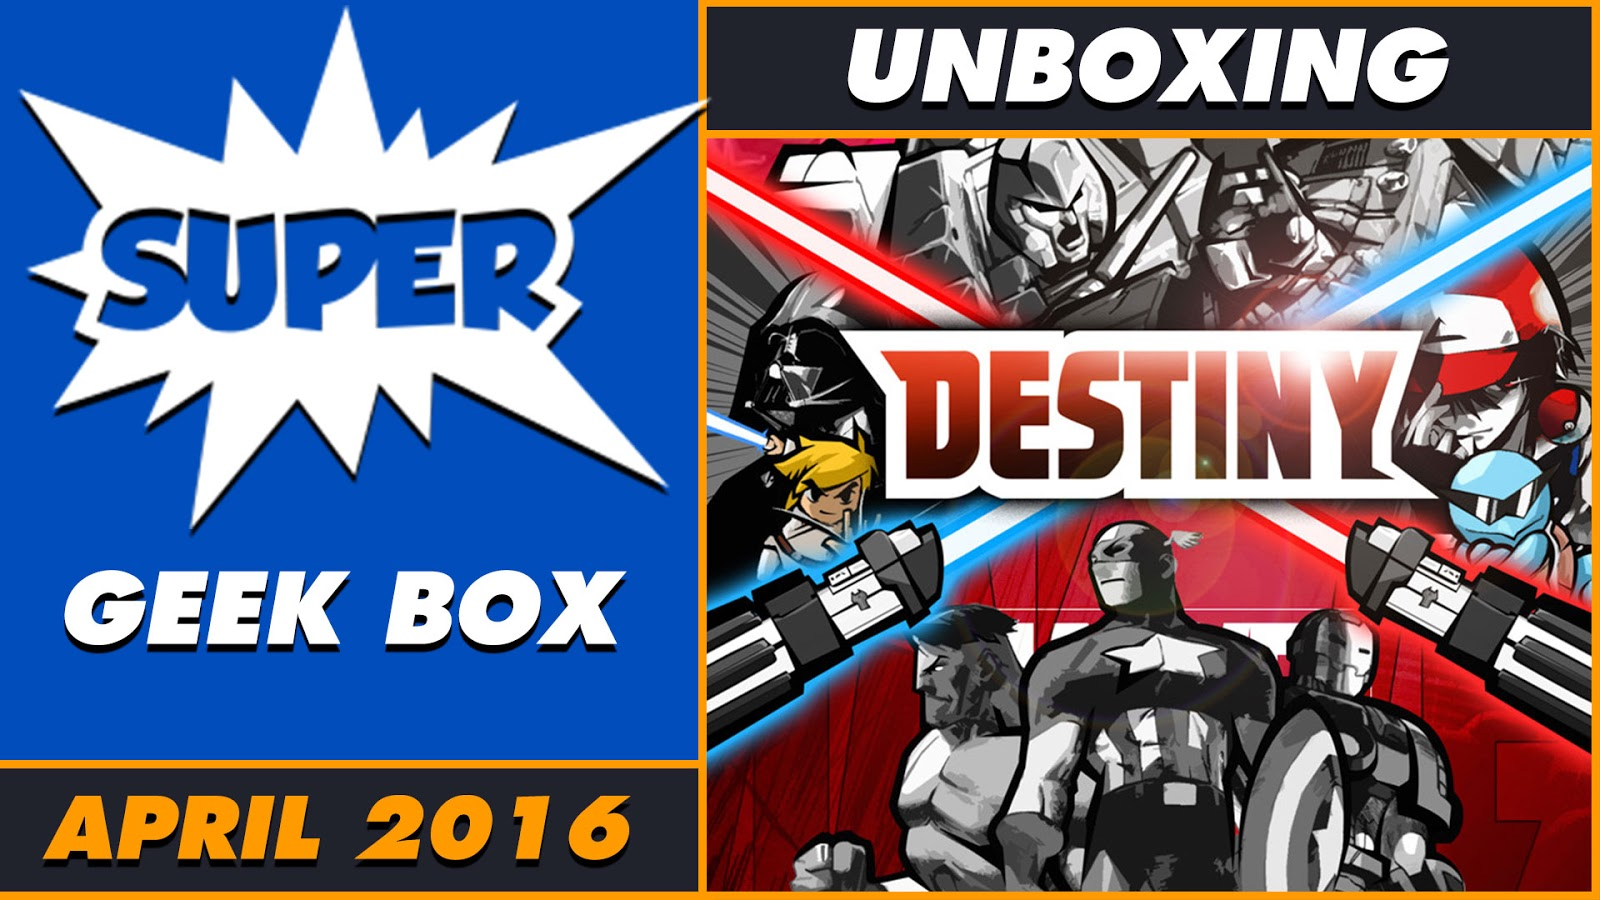 Unboxing Super Geek Box Destiny April 2016